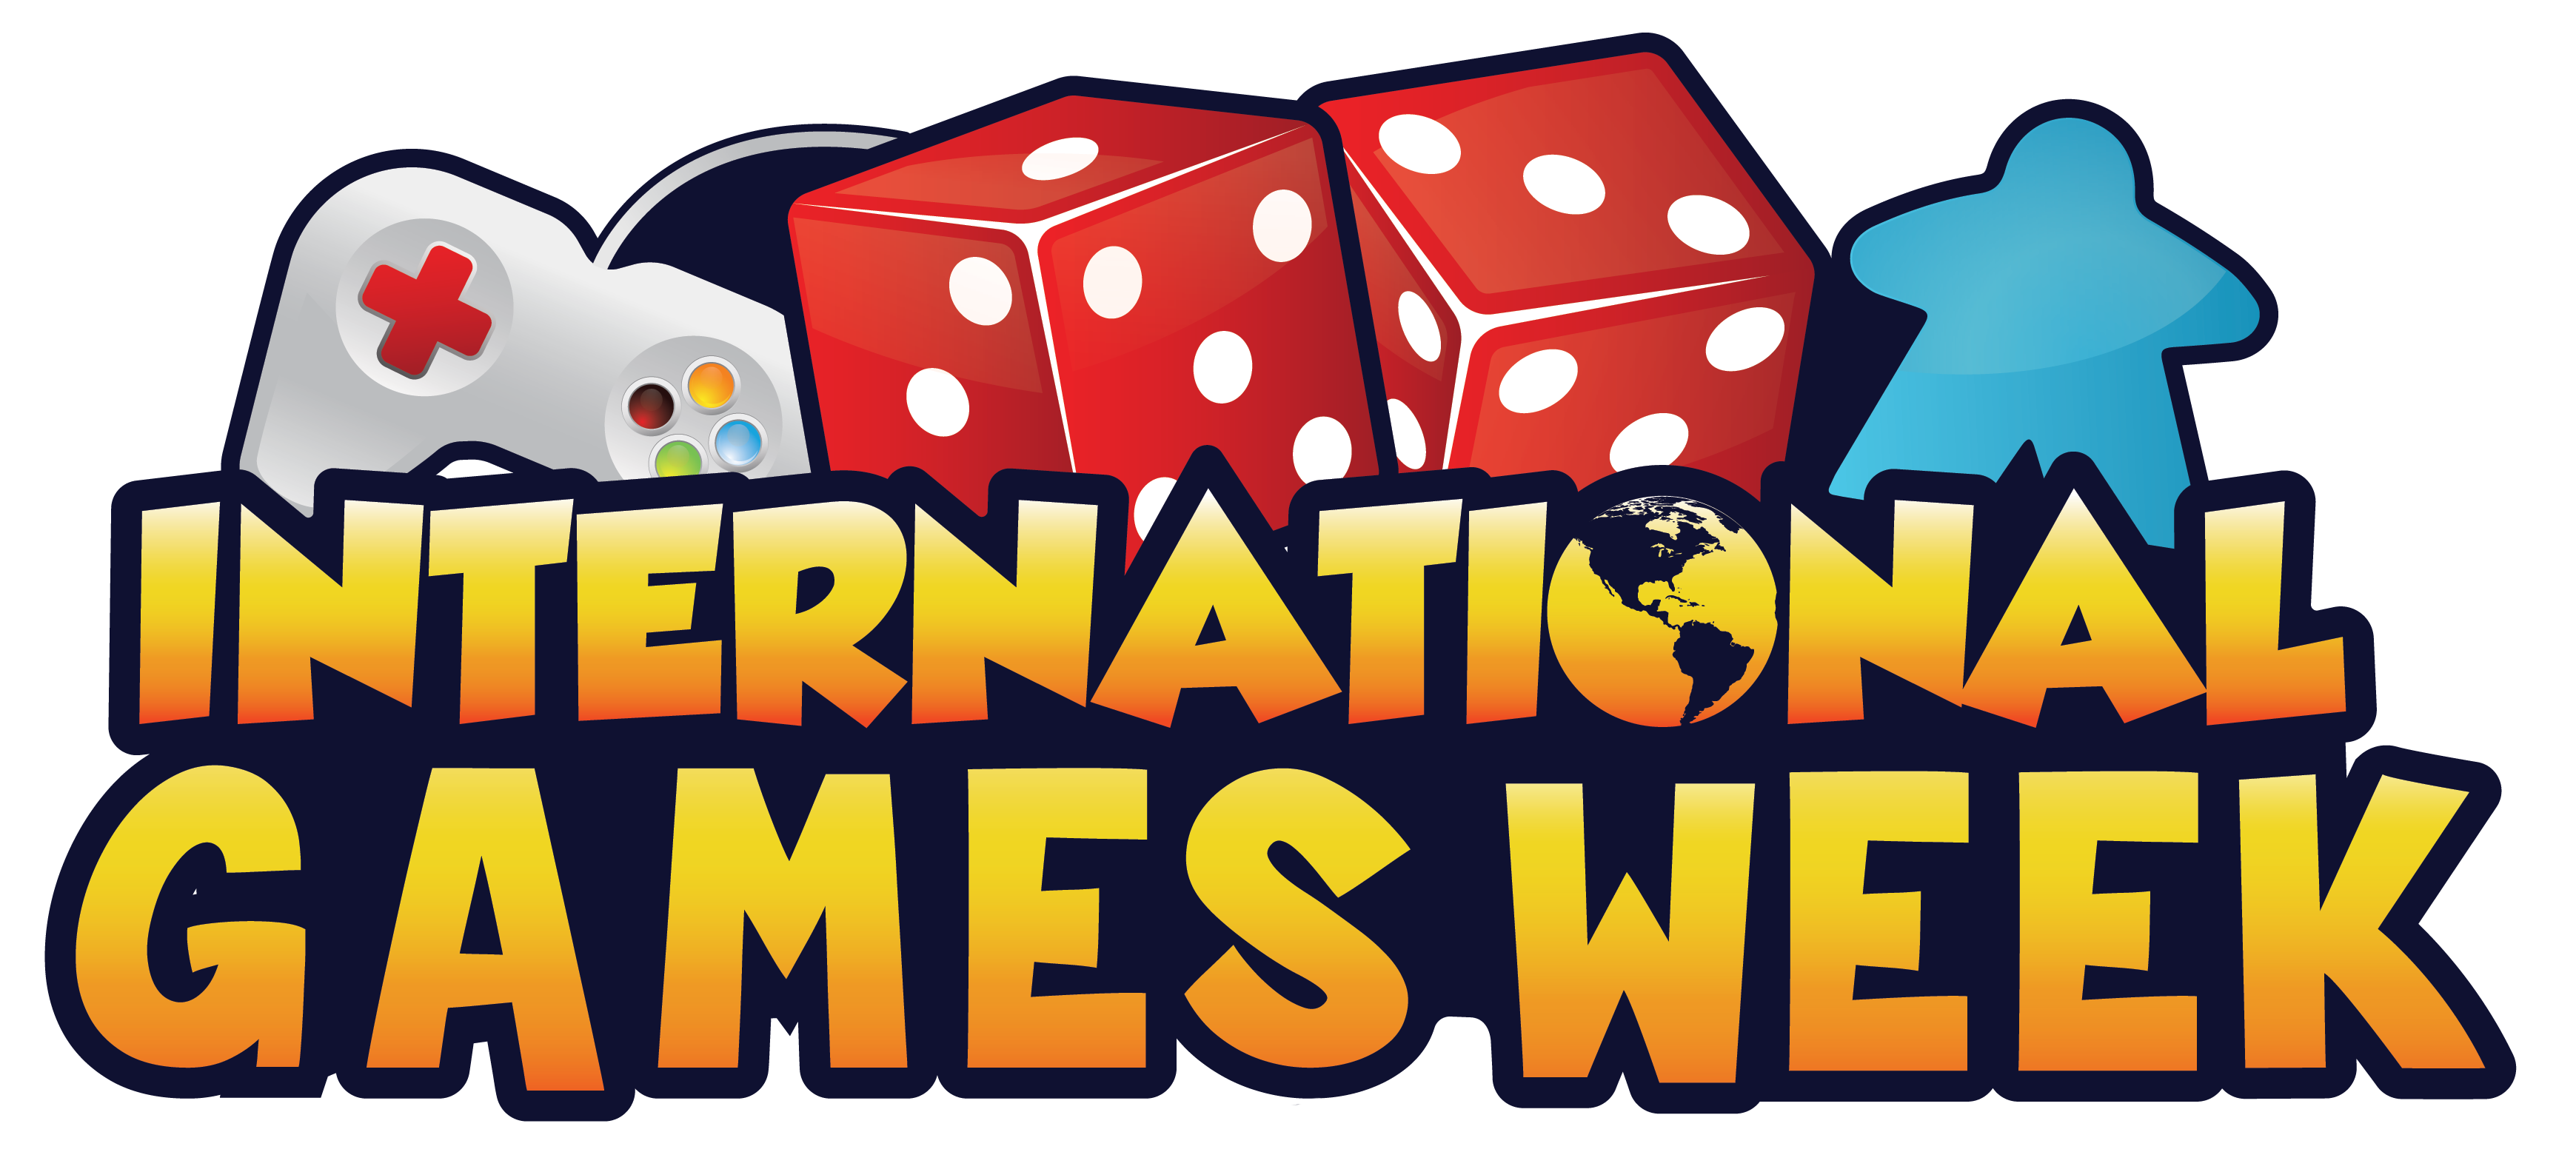 Games Week Logo